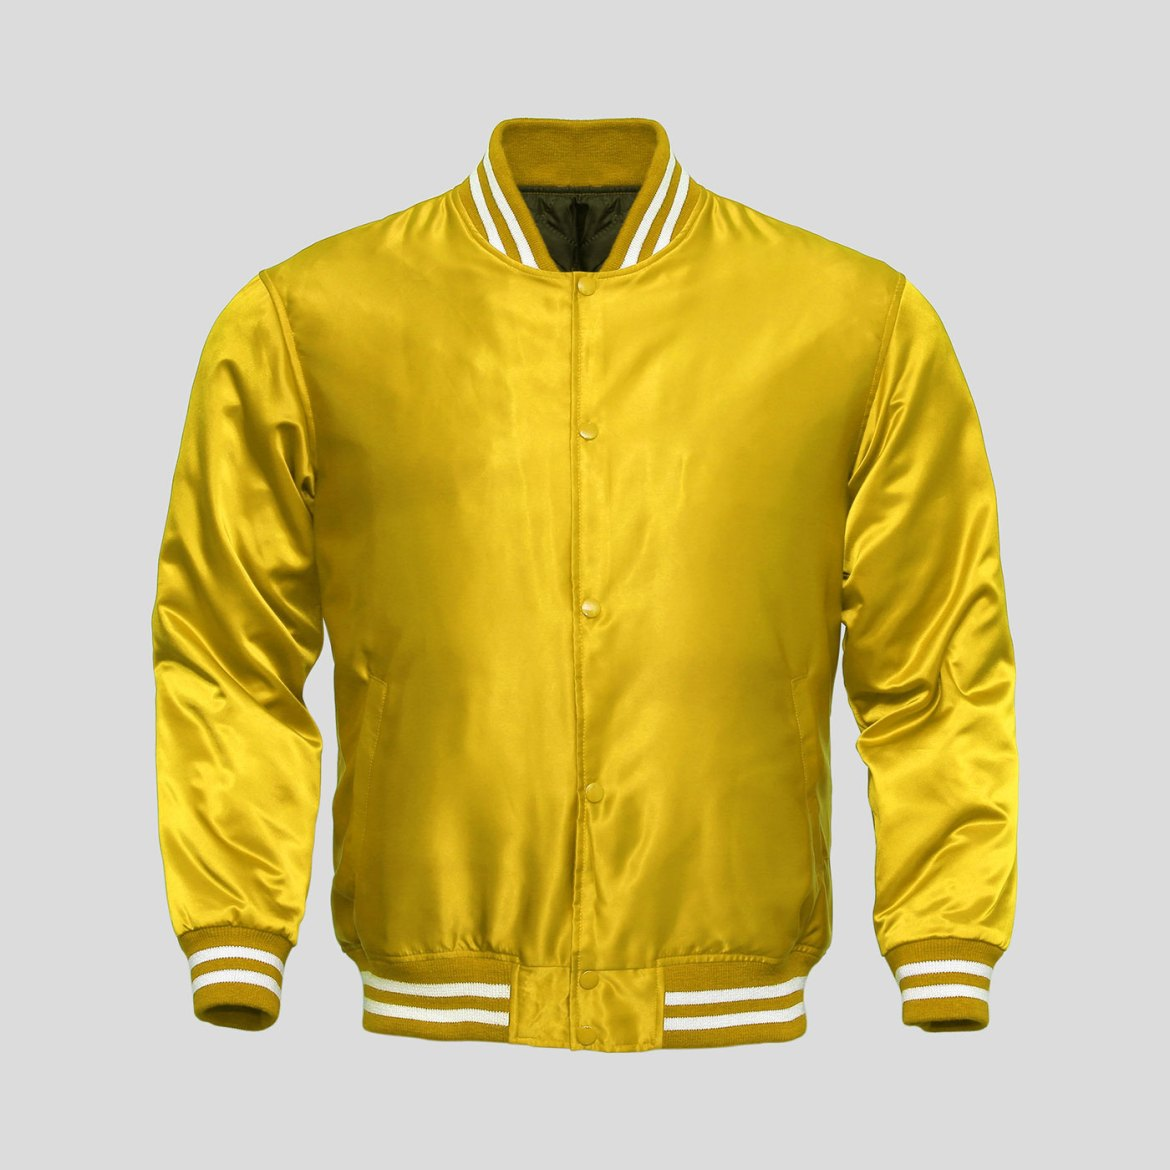 Yellow Satin Baseball Jacket | Clothoo